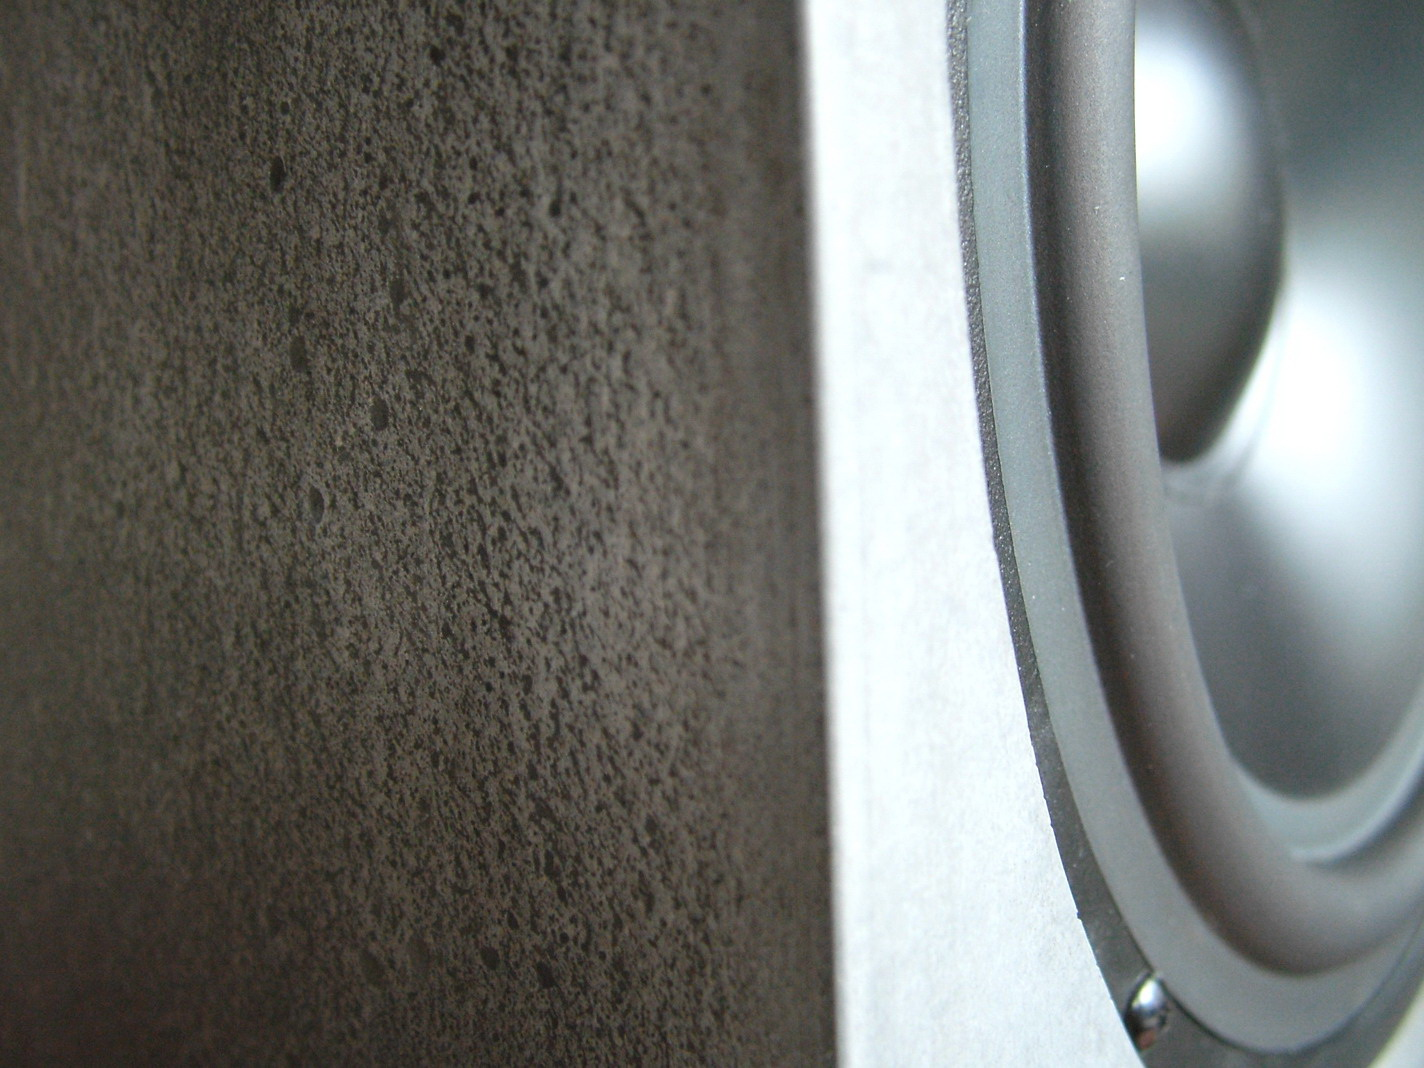 sargi ivanka_speakers_uj_015_detail